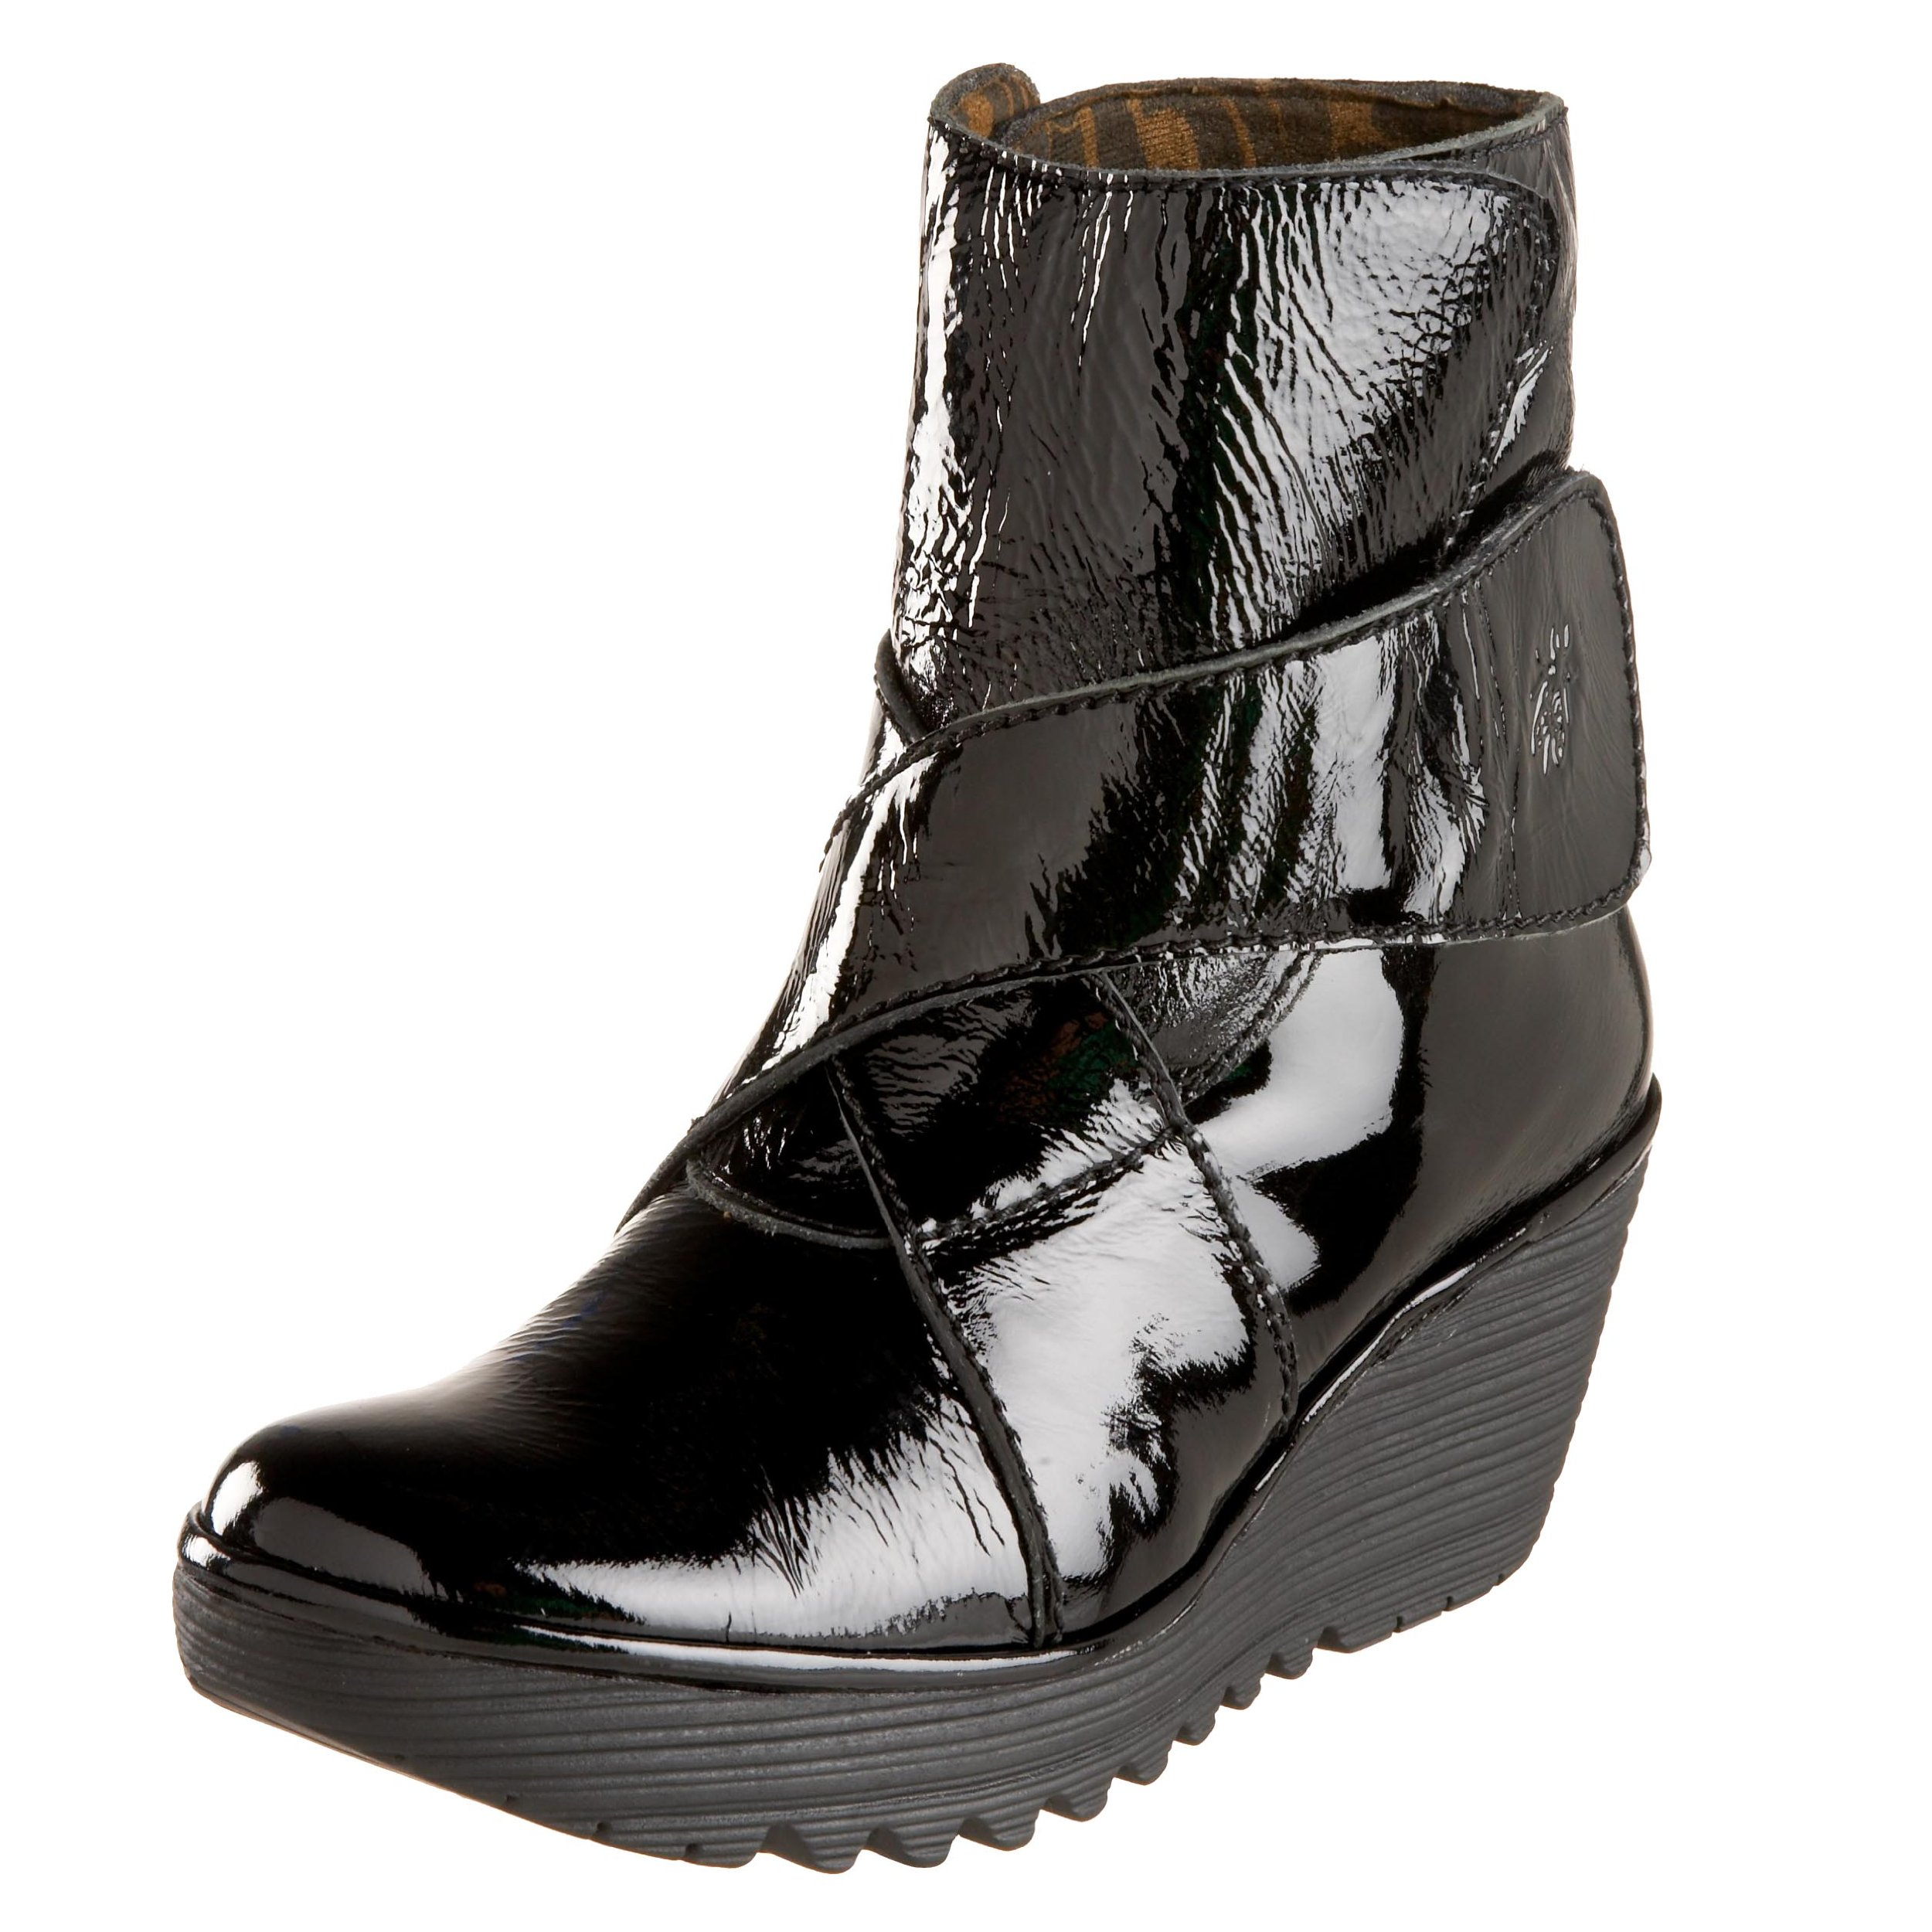 FLY London Women's Yeddo Boot,Black Patent,39 EU (US Women's 8 M)